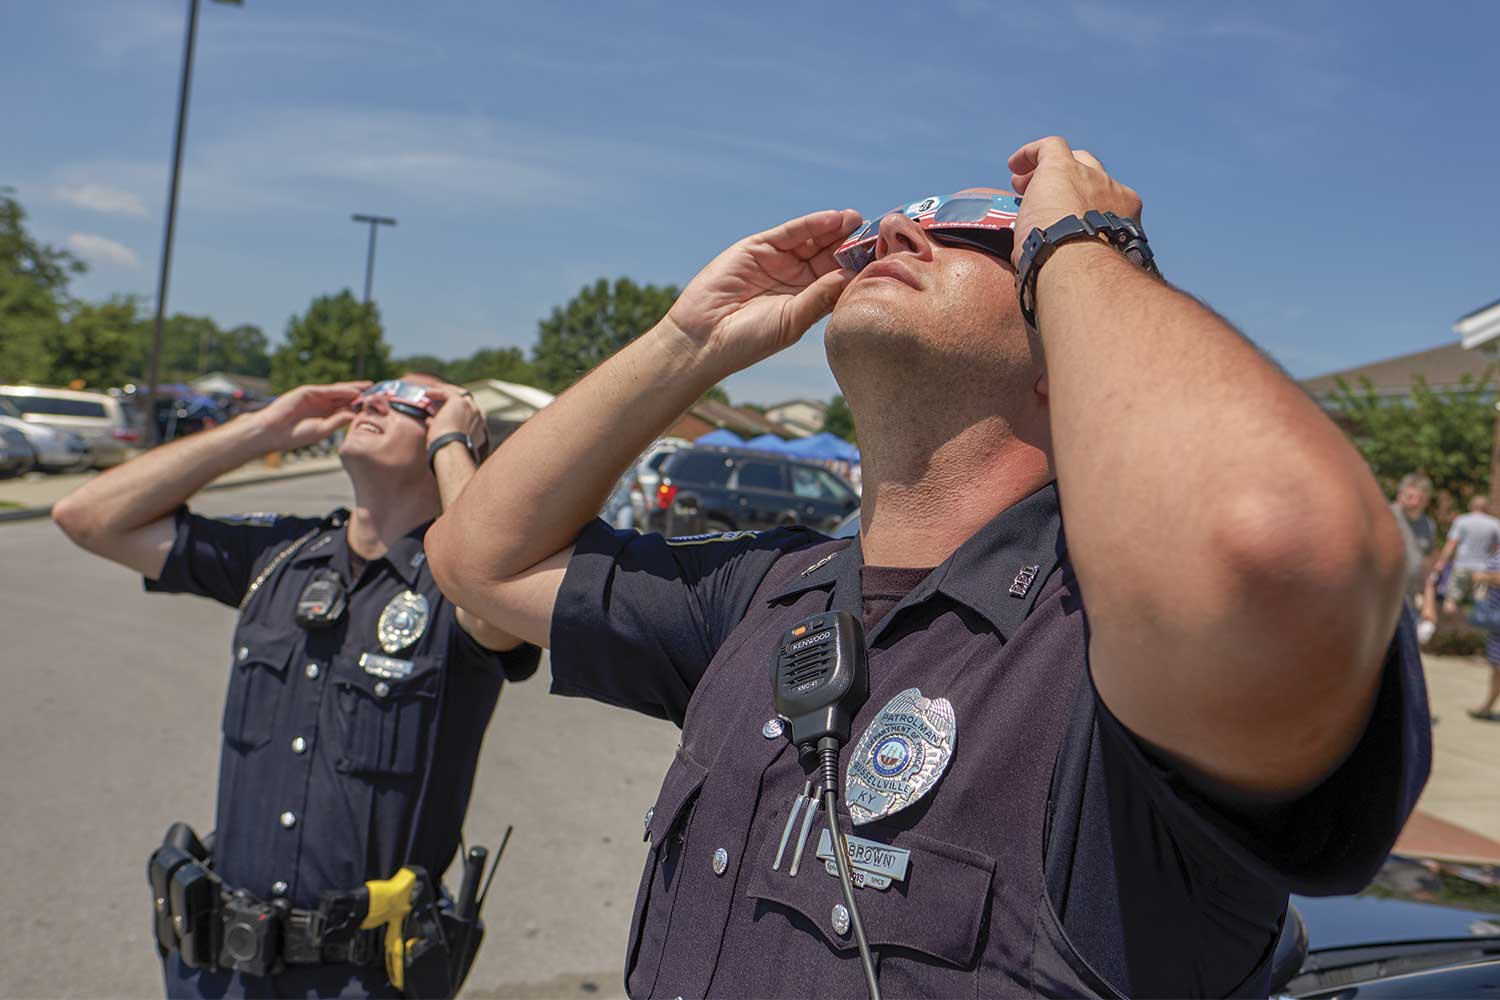 In August 2017, Russellville was a prime location for the solar eclipse. Officers Tate Piper, left, and Ryan Brown put on a pair of solar eclipse glasses to view the event. (Photo by Jim Robertson)